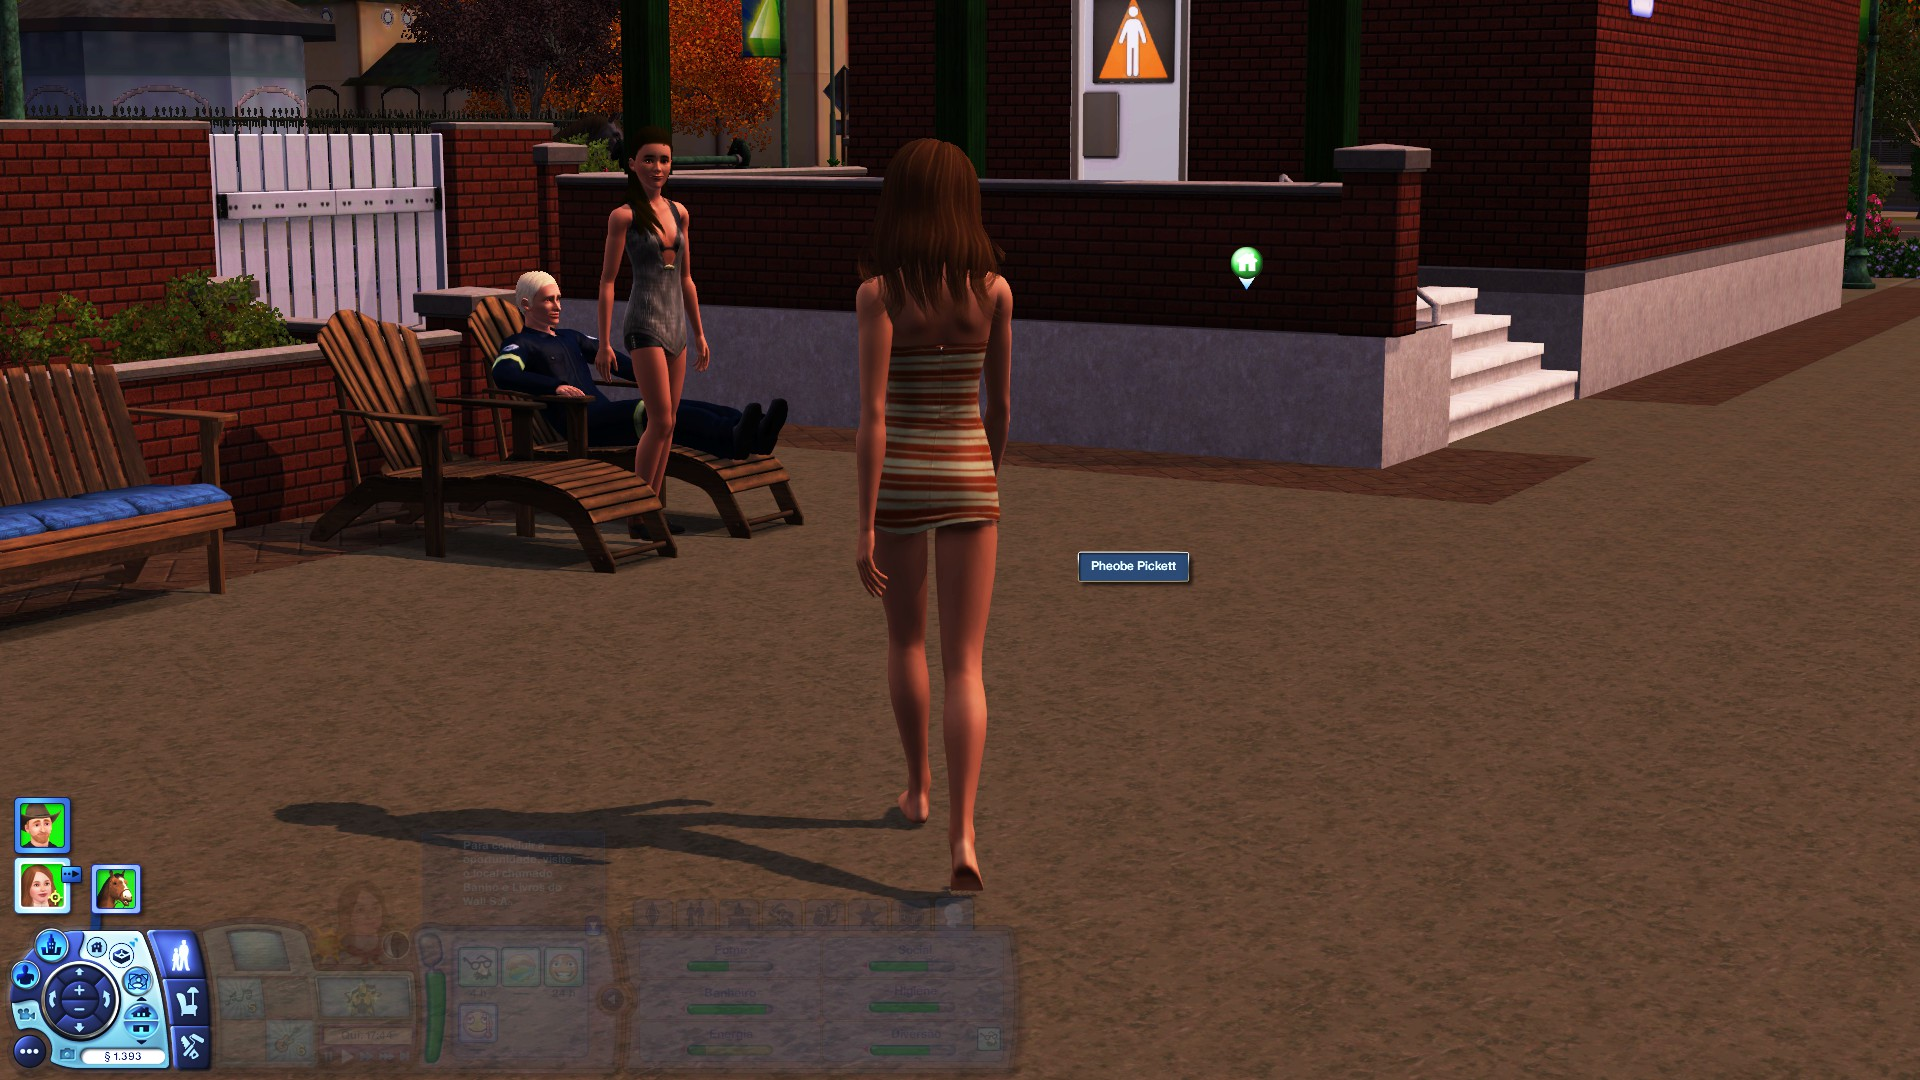 Mod The Sims - The Third Person Mod